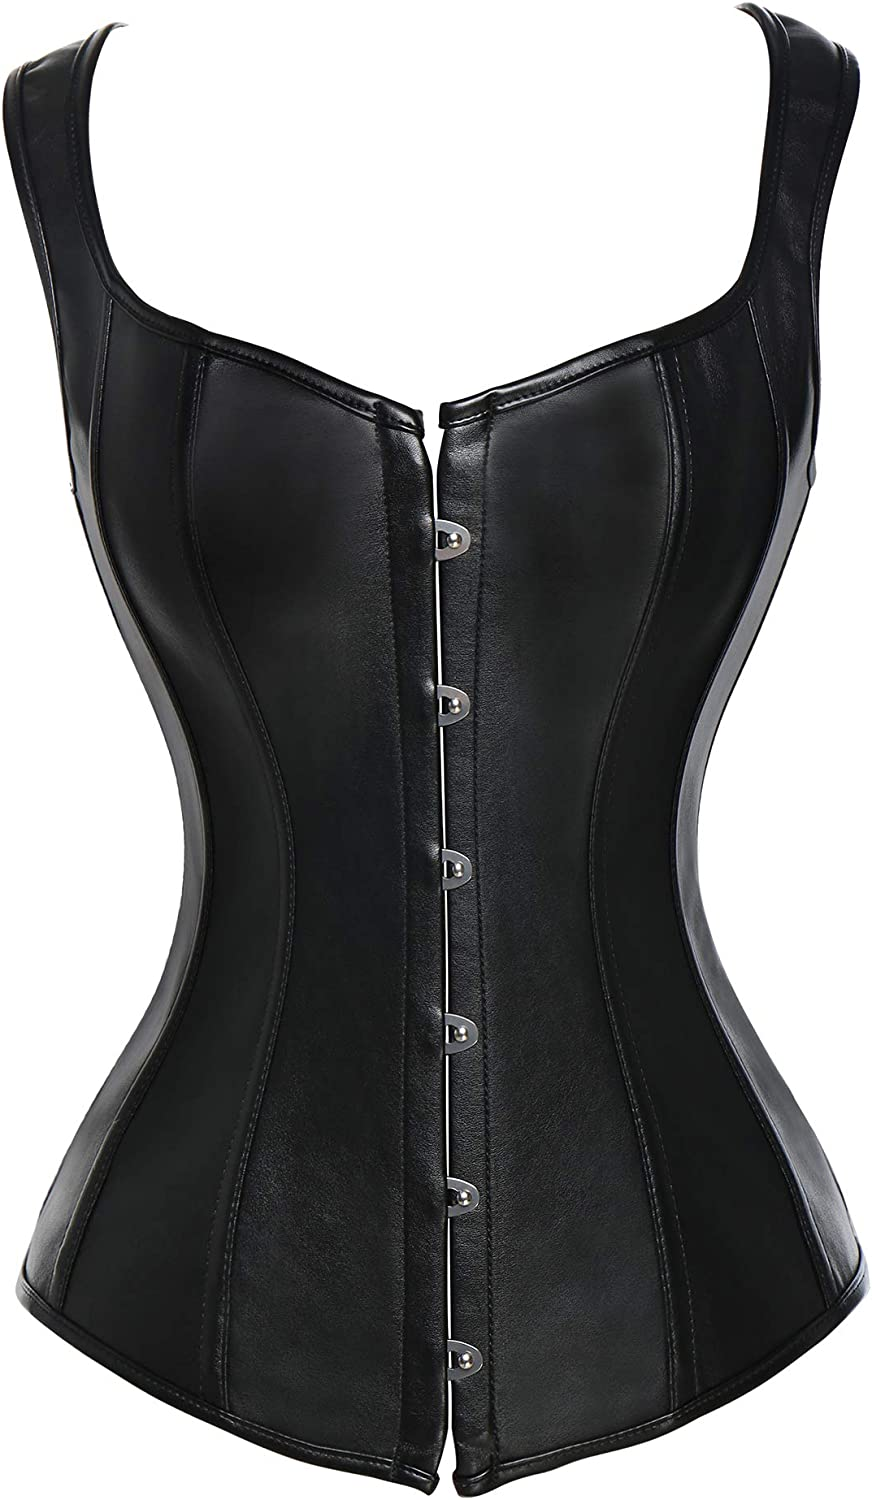 Baltimore Mall SLIMBELLE Faux Max 89% OFF Leather Corset Basque Bustier Buckle-up Overbust